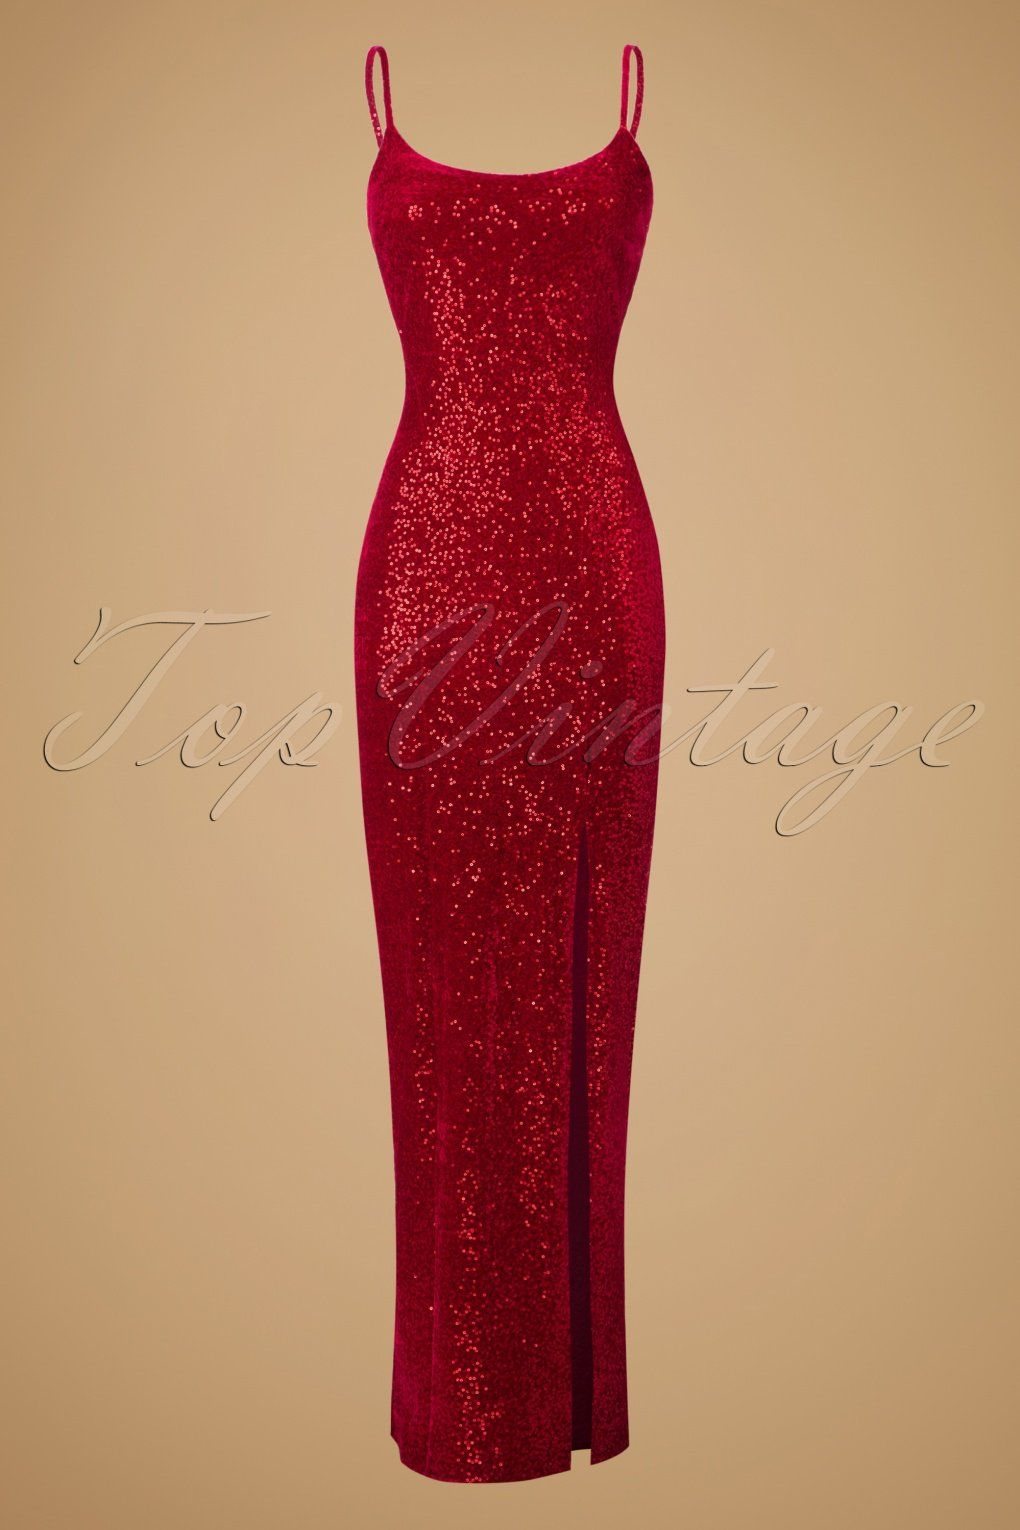 You Won T Stay Unnoticed When Wearing This 50s Dianne Sequins Maxi Dress The Red Carpet Will Be Rolled Red Dresses Classy Sequin Maxi Dress Sequin Dress Fabric [ 1530 x 1020 Pixel ]